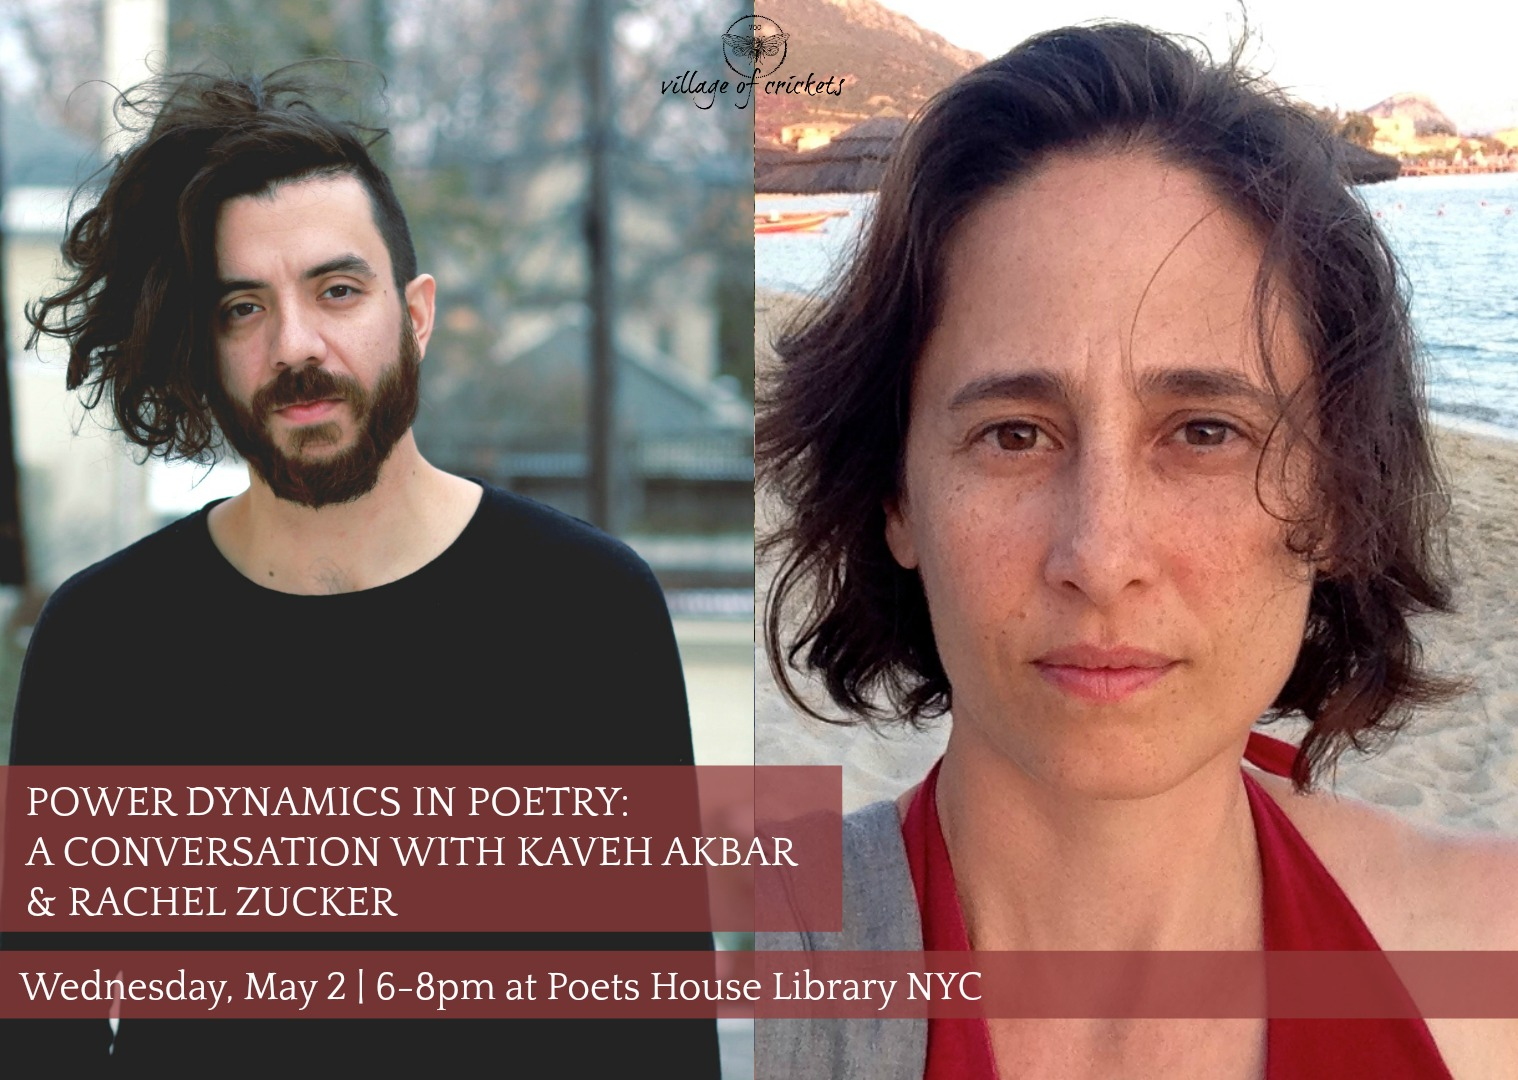 Power Dynamics in Poetry: A Conversation with Kaveh Akbar & Rachel Zucker